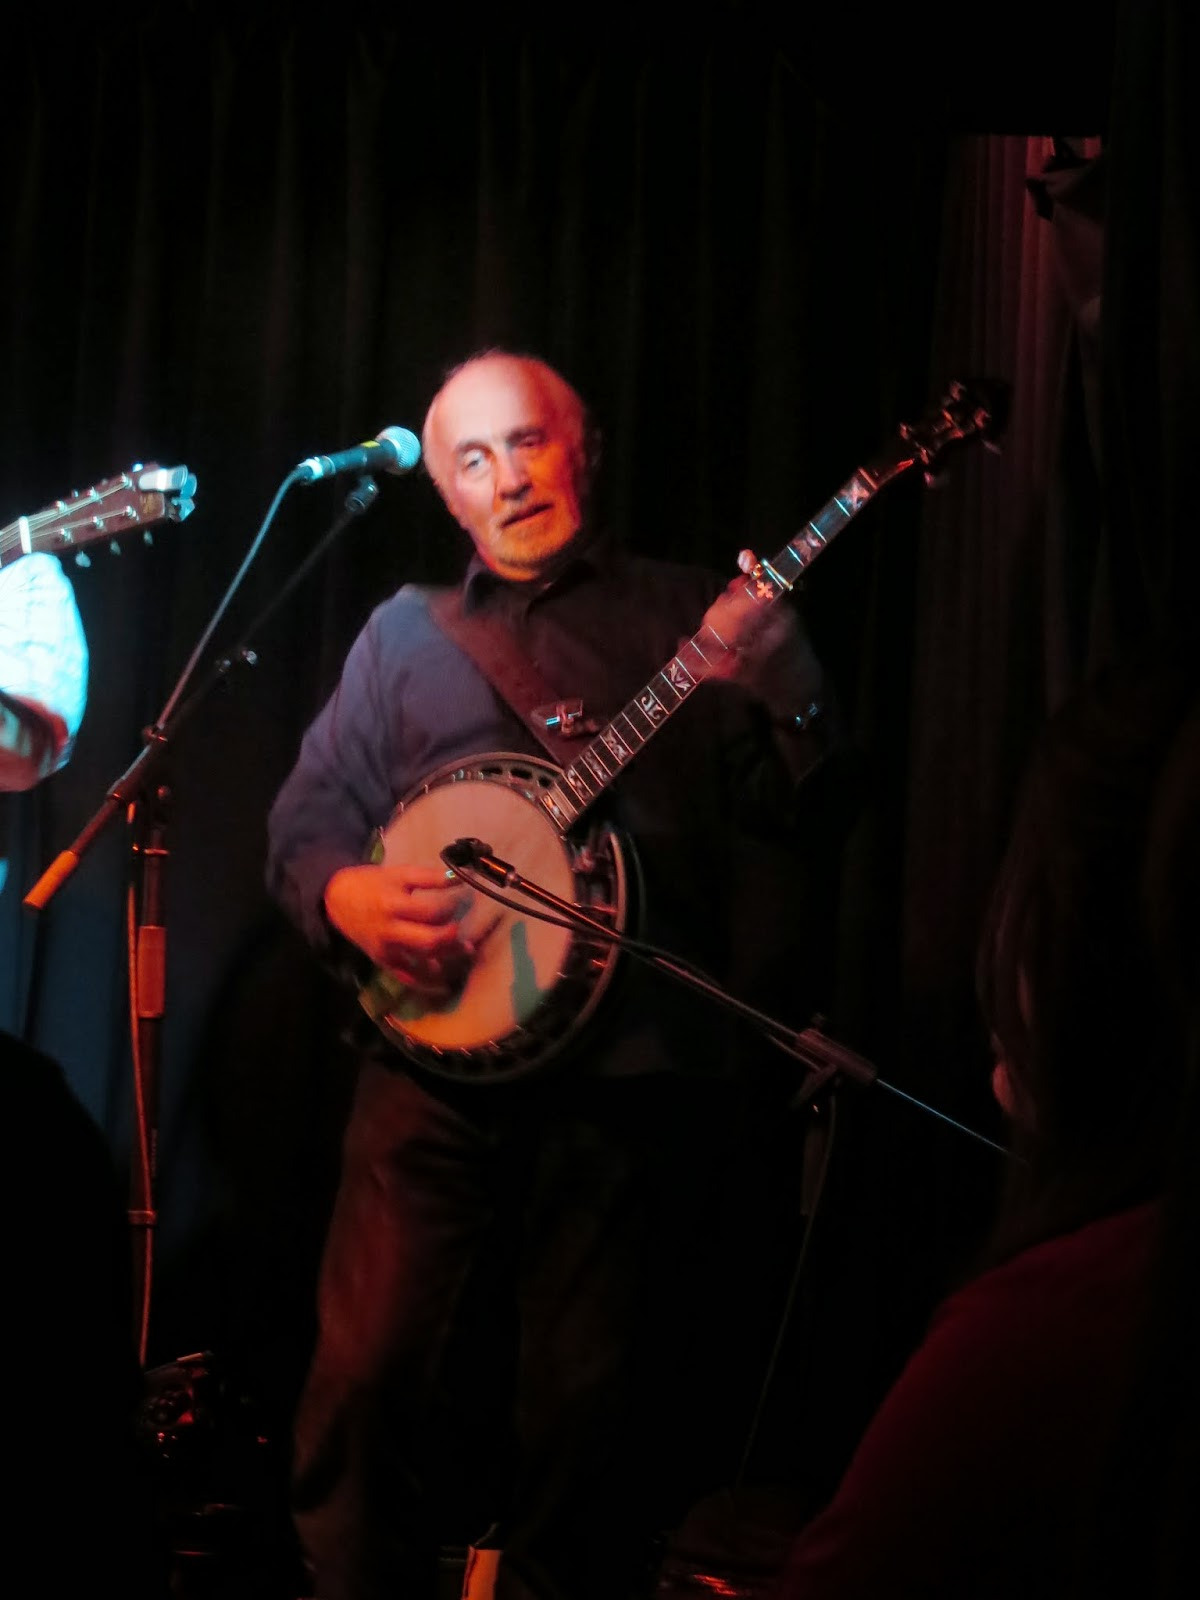 Greg Cahill - Banjo Player and Frontman for Special Consensus Bluegrass Band